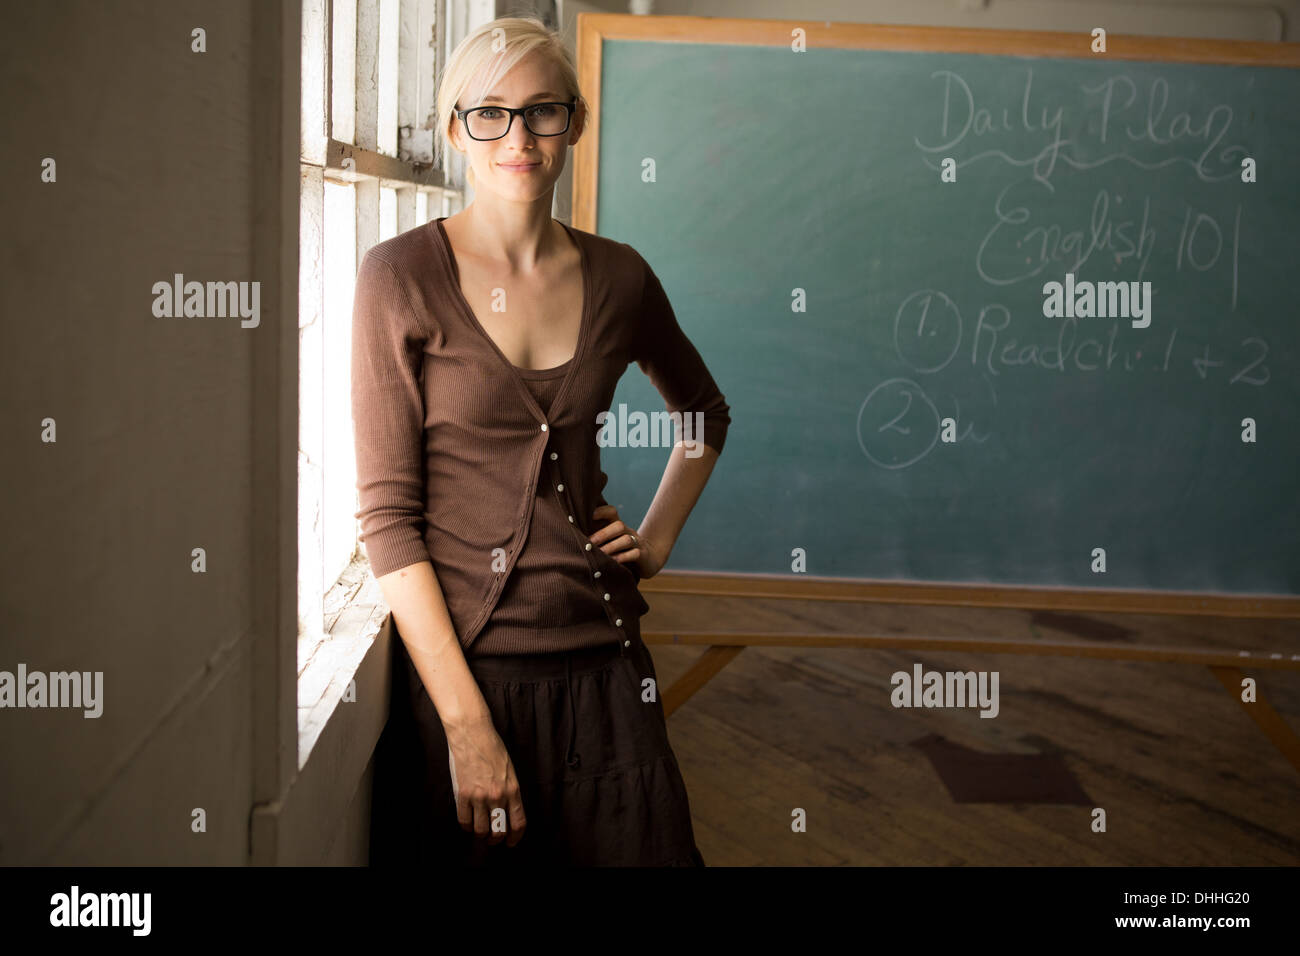 Portrait of teacher with hand on hip and blackboard - Stock Image